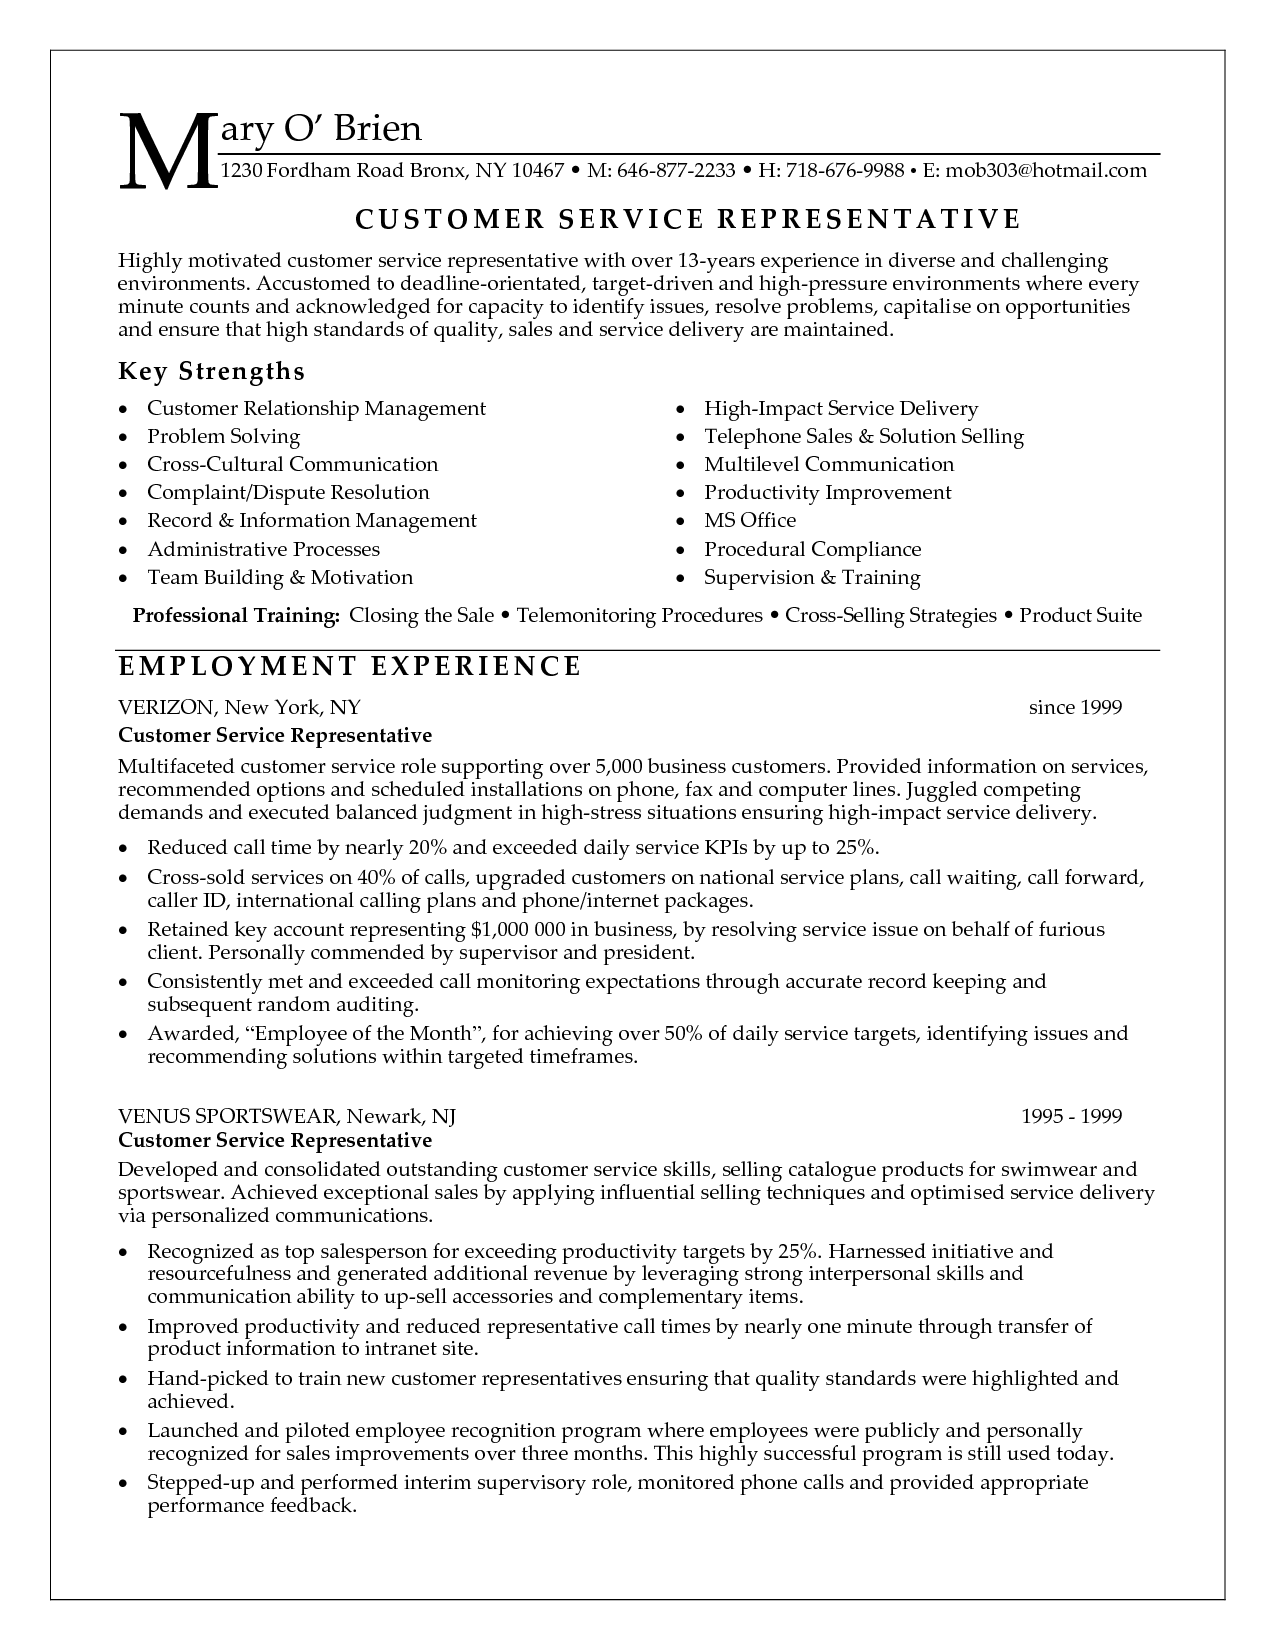 Call Center Sample Resume With No Experience 71581039 Png 12751650 Letter Pinterest